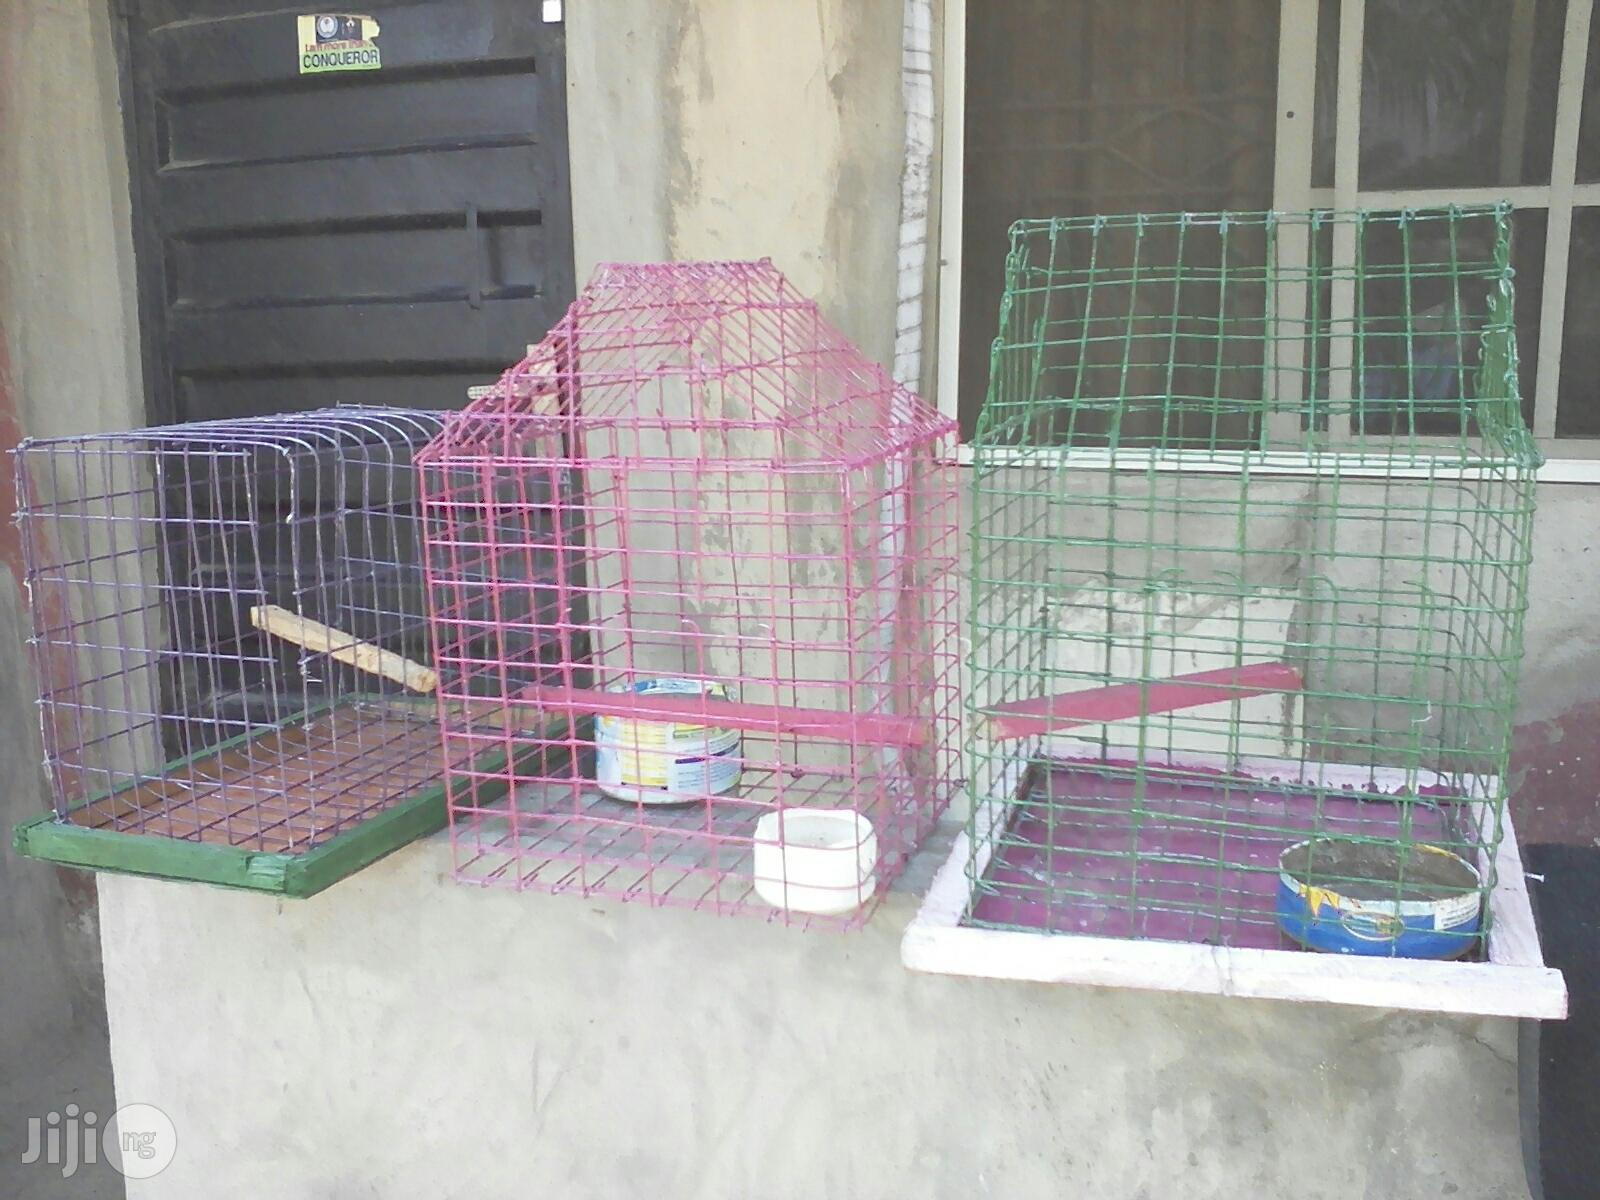 Cages For Rabbits, Birds, Mouse Etc For Sale